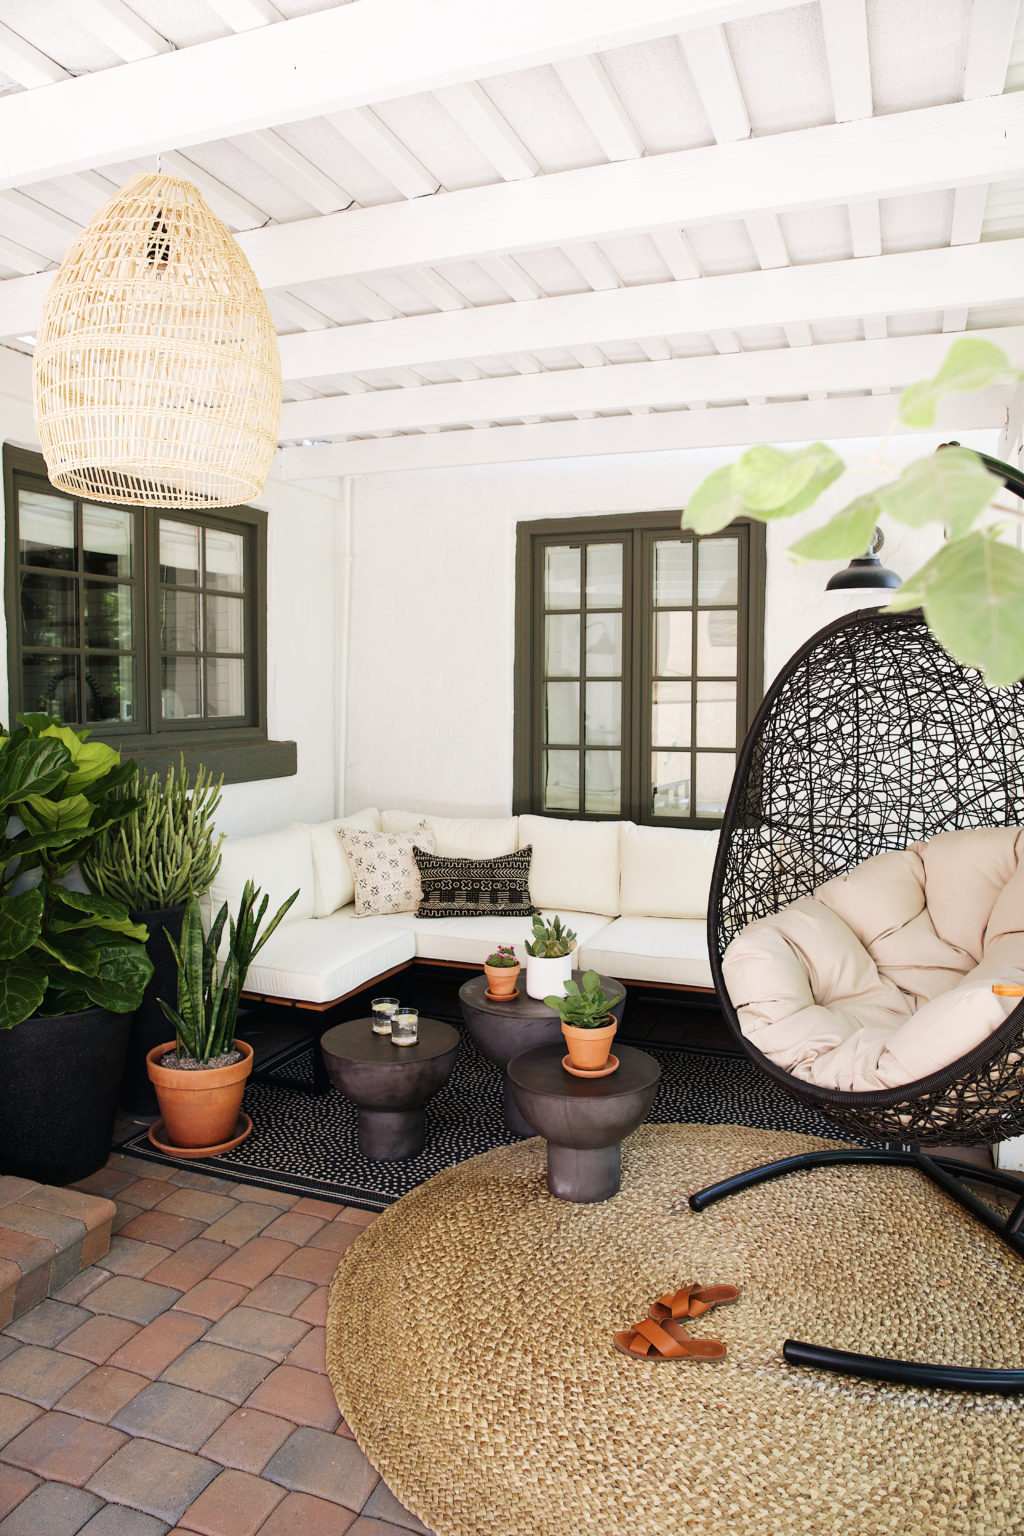 This space from the New Darlings was really easy for them to achieve.  New rugs, side tables, simple couch, plants and a hanging chair...voila!